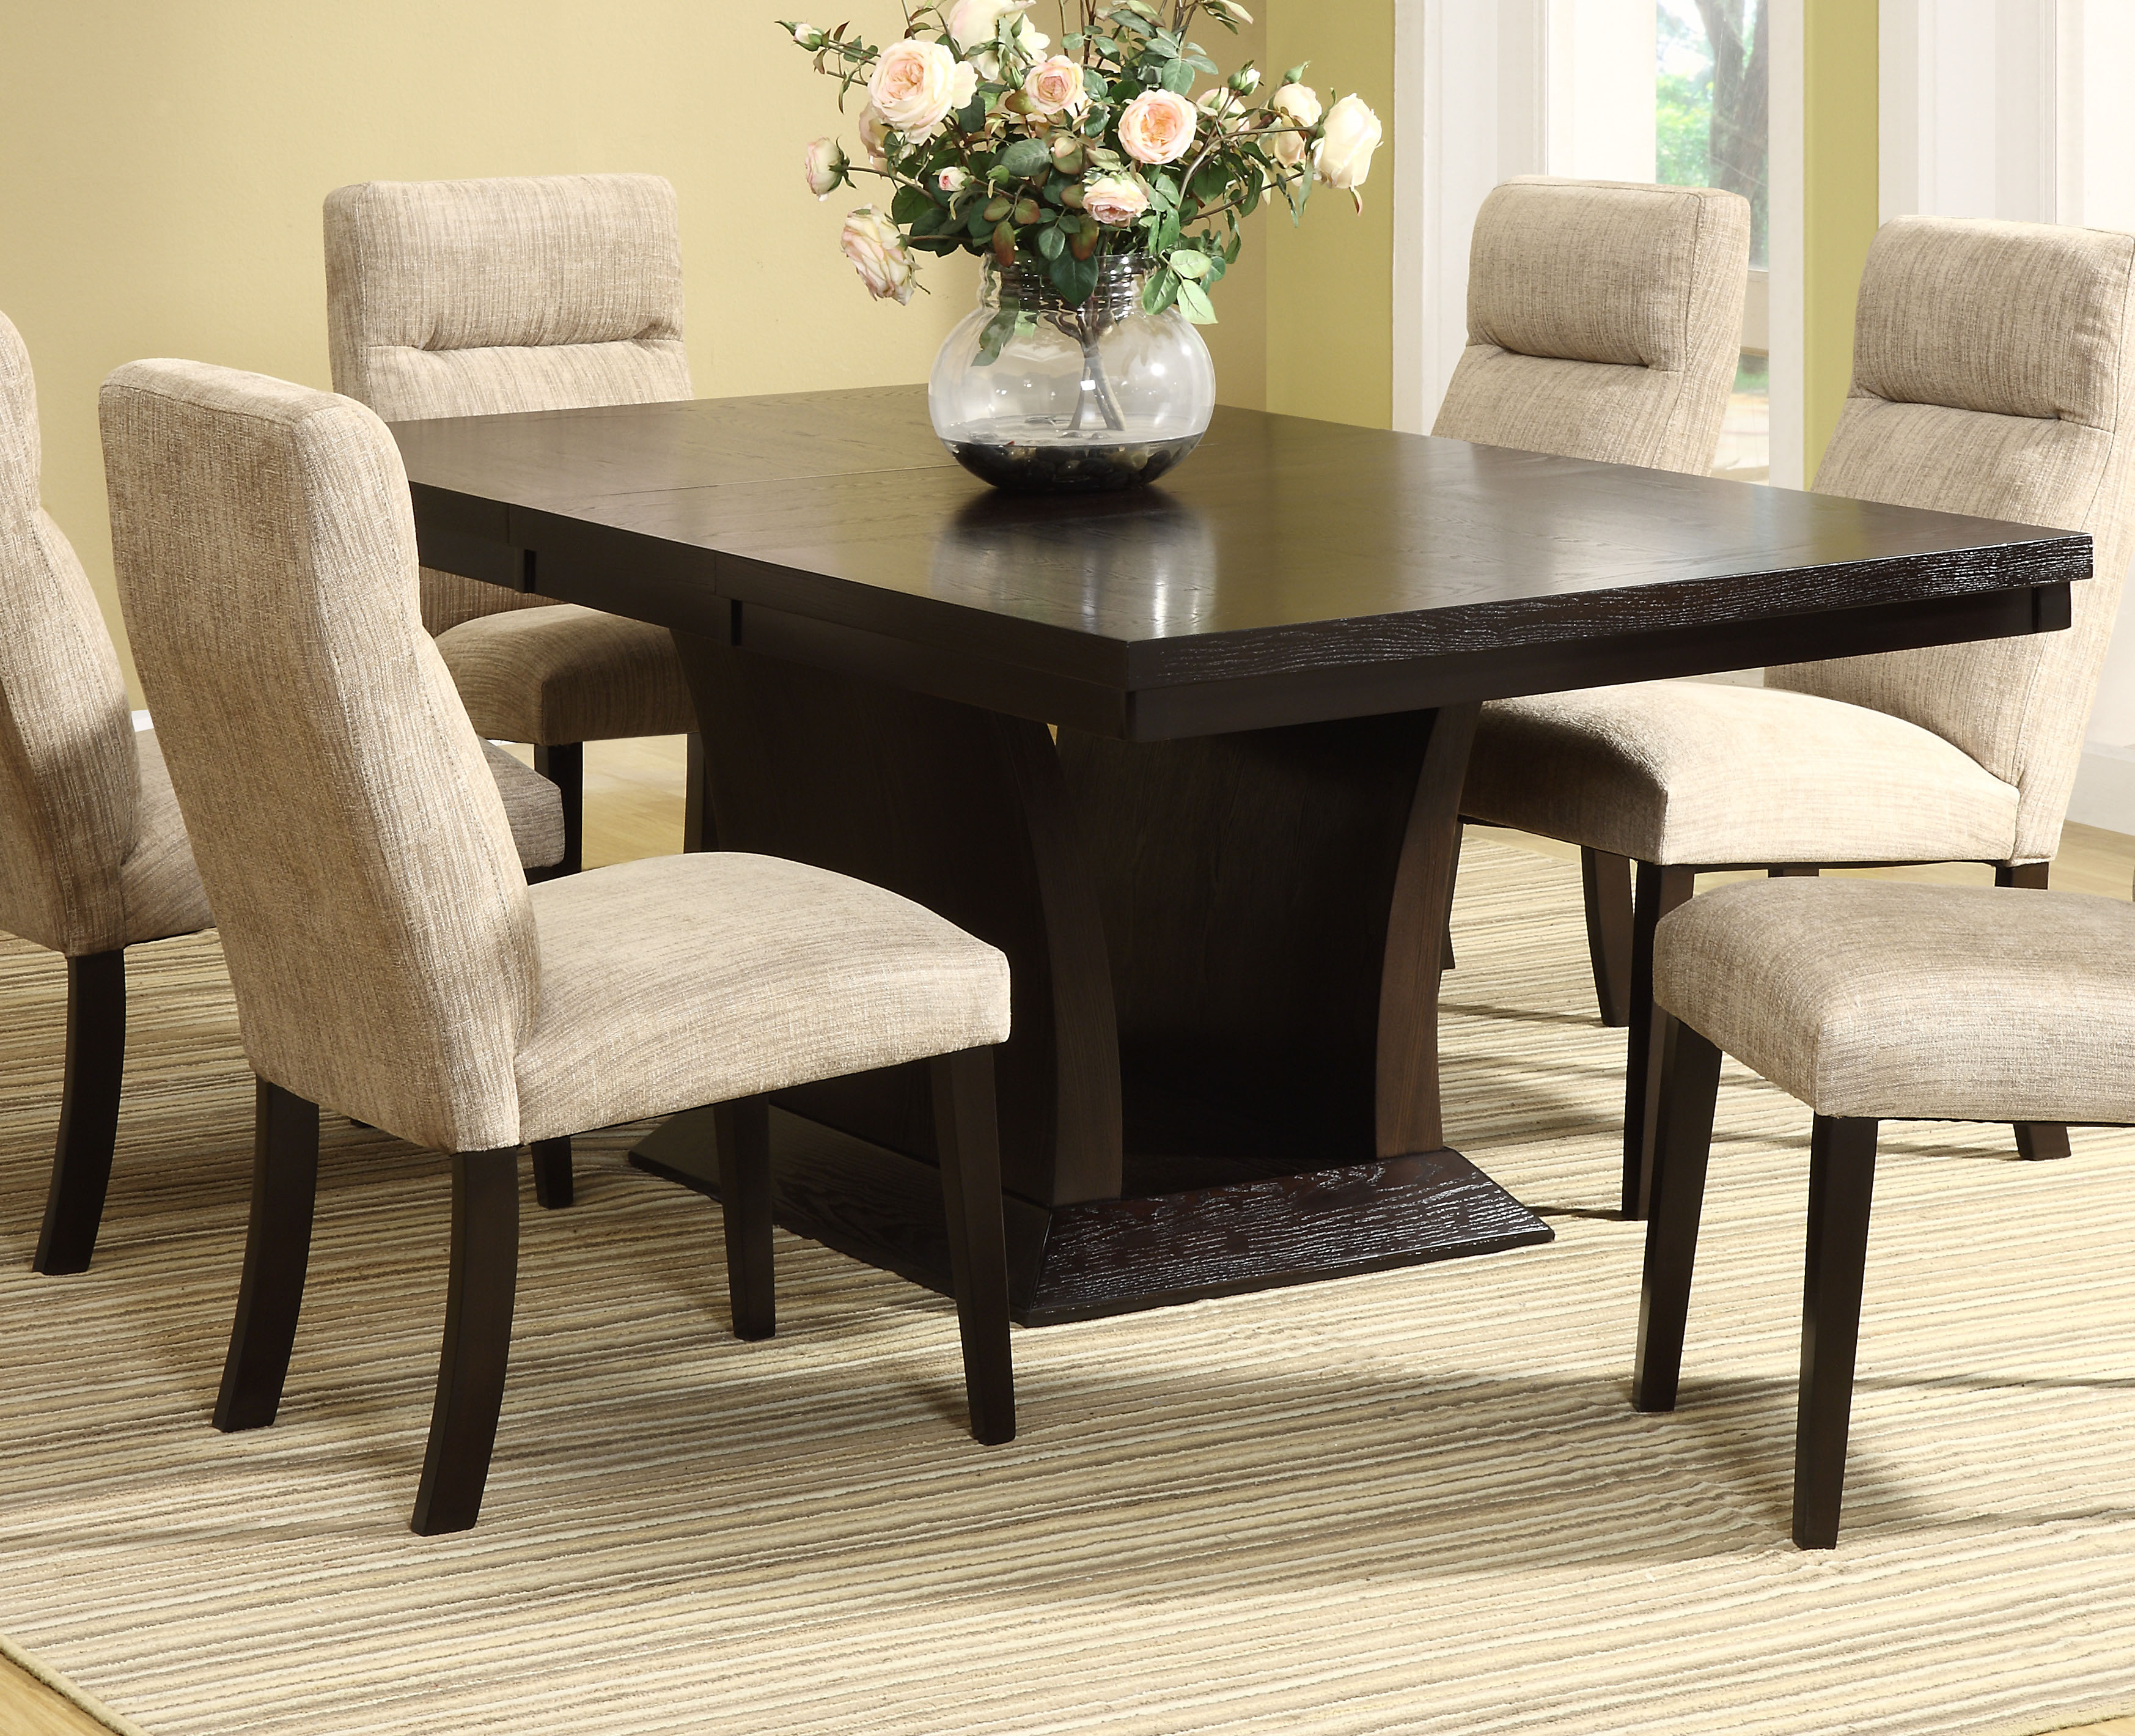 avery espresso dining table dallas tx dining room dining tables